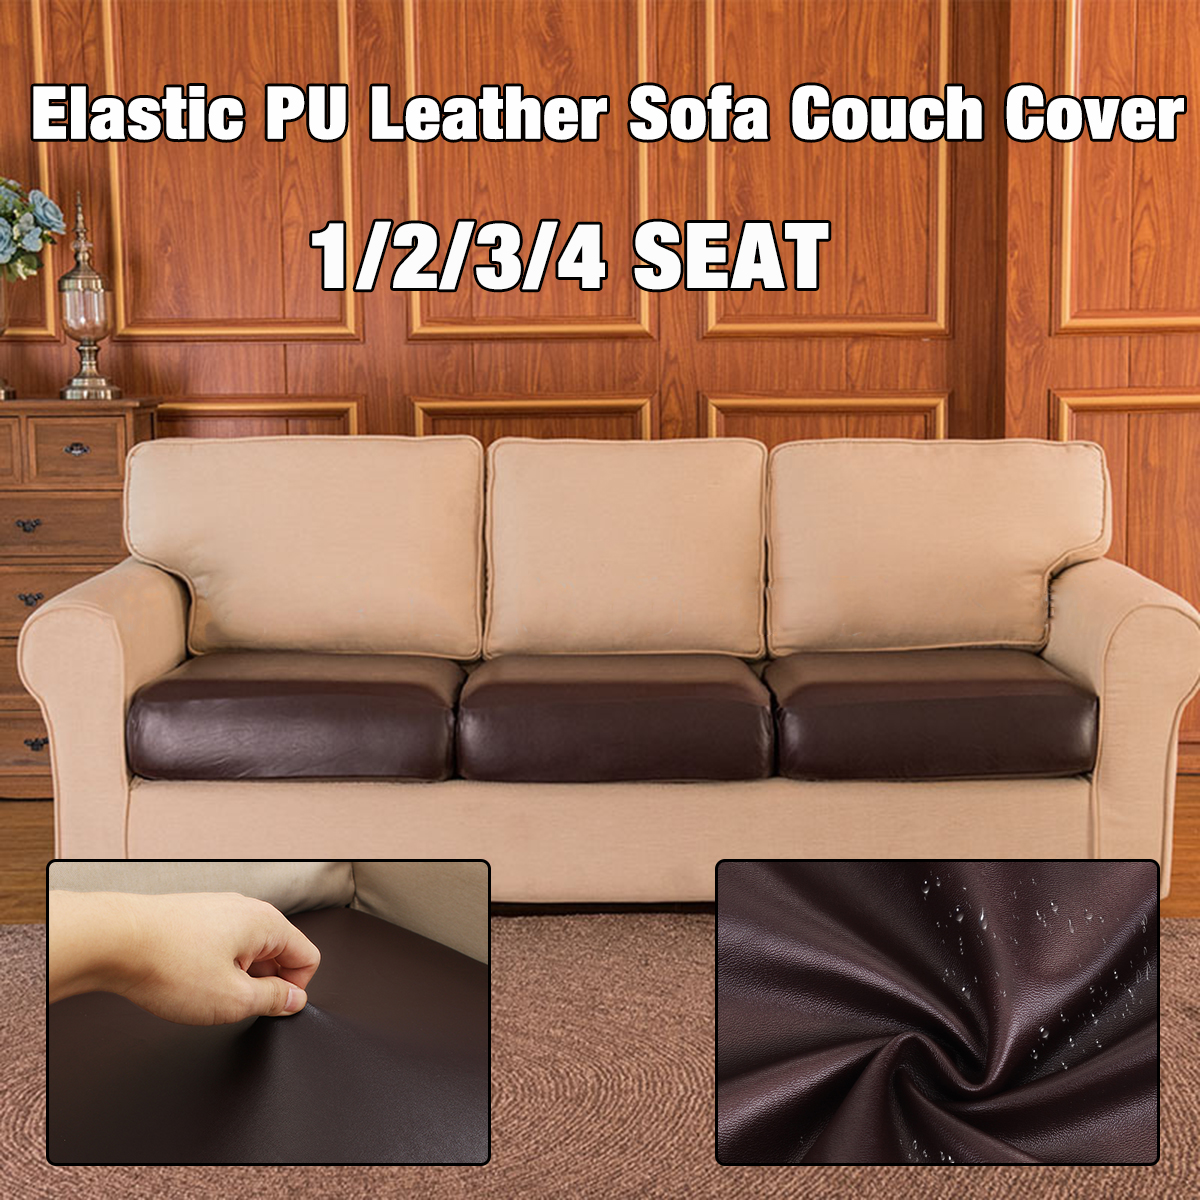 Pu Leather Couch Cover Seat Protector